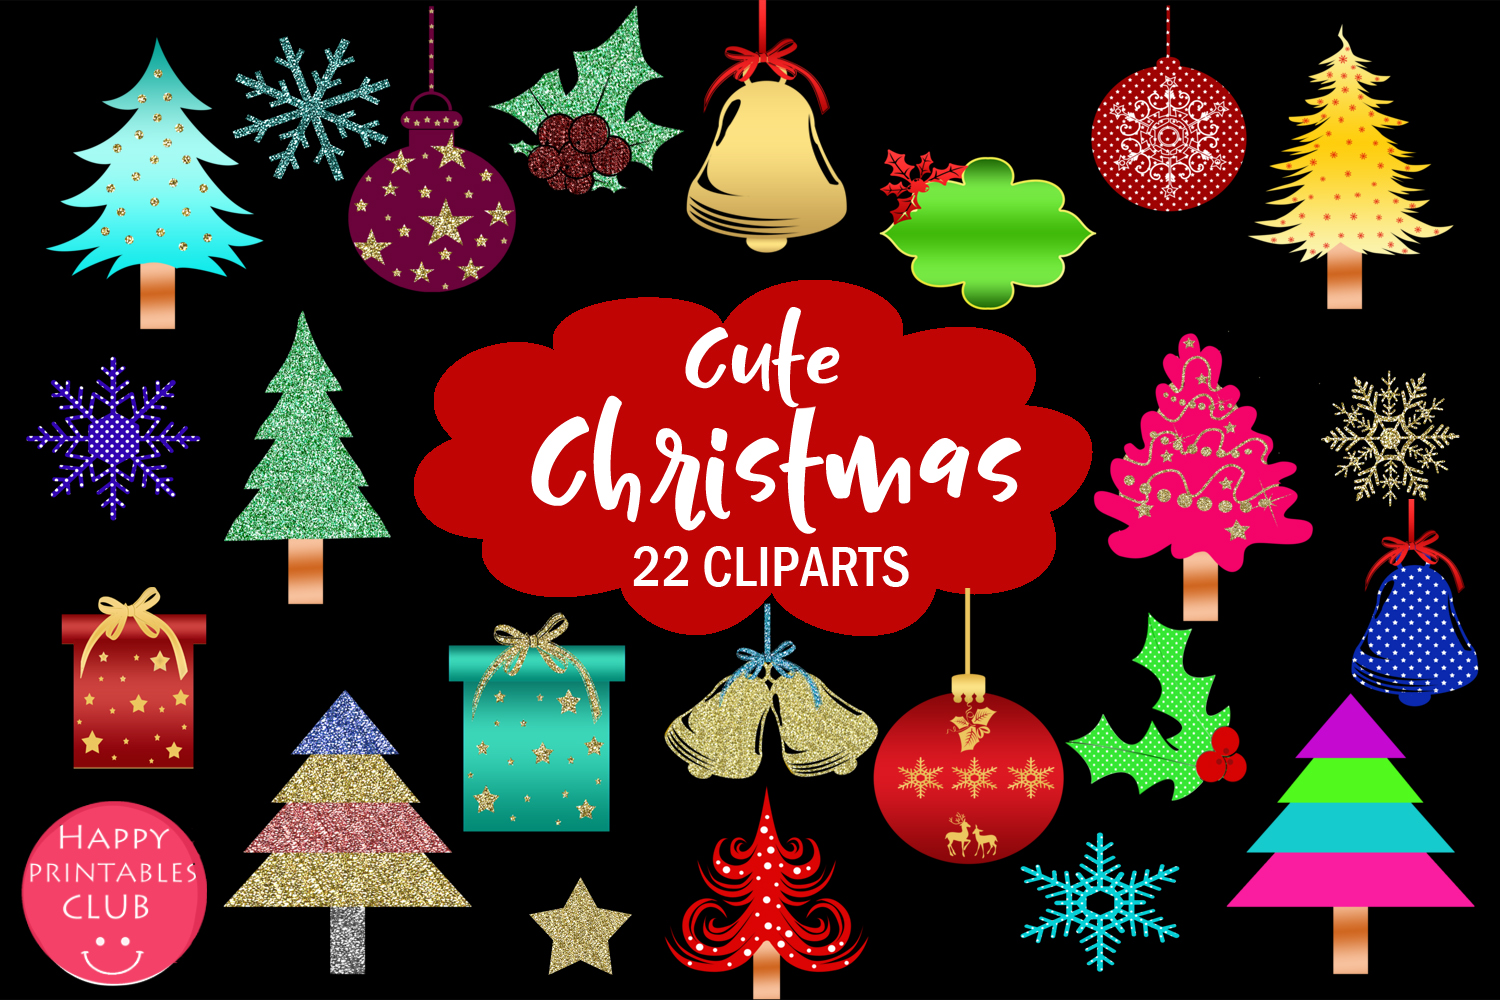 Cute Christmas Clipart- Cute Holiday Graphics Clipart example image 1